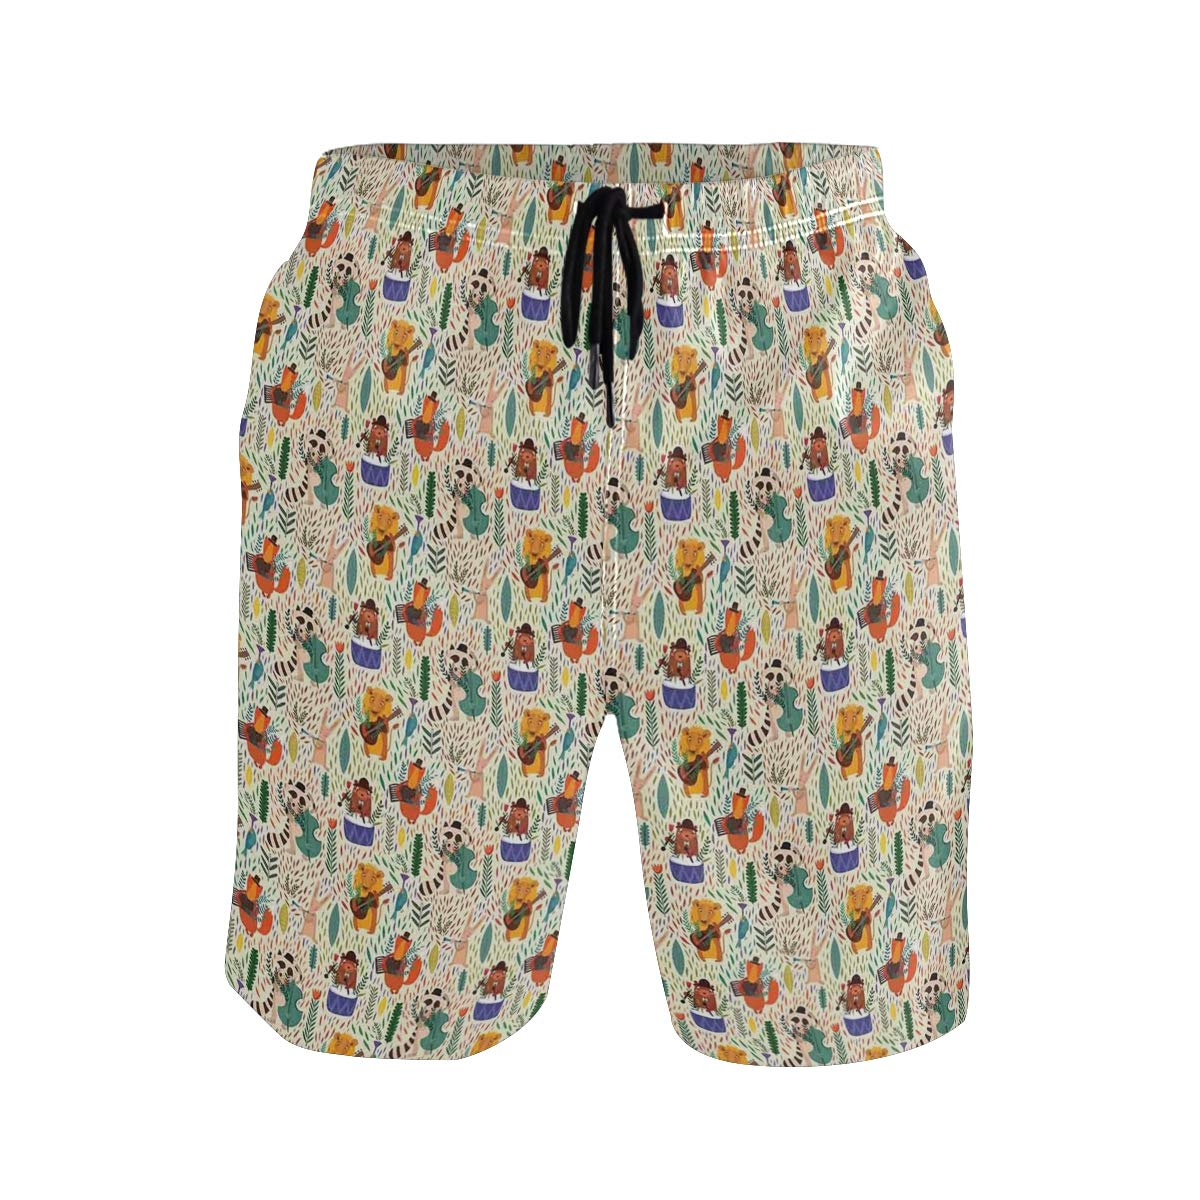 KVMV Jolly Frog with Greater Eye Lizard Gecko Smily Childish Casual Swim Trunks All